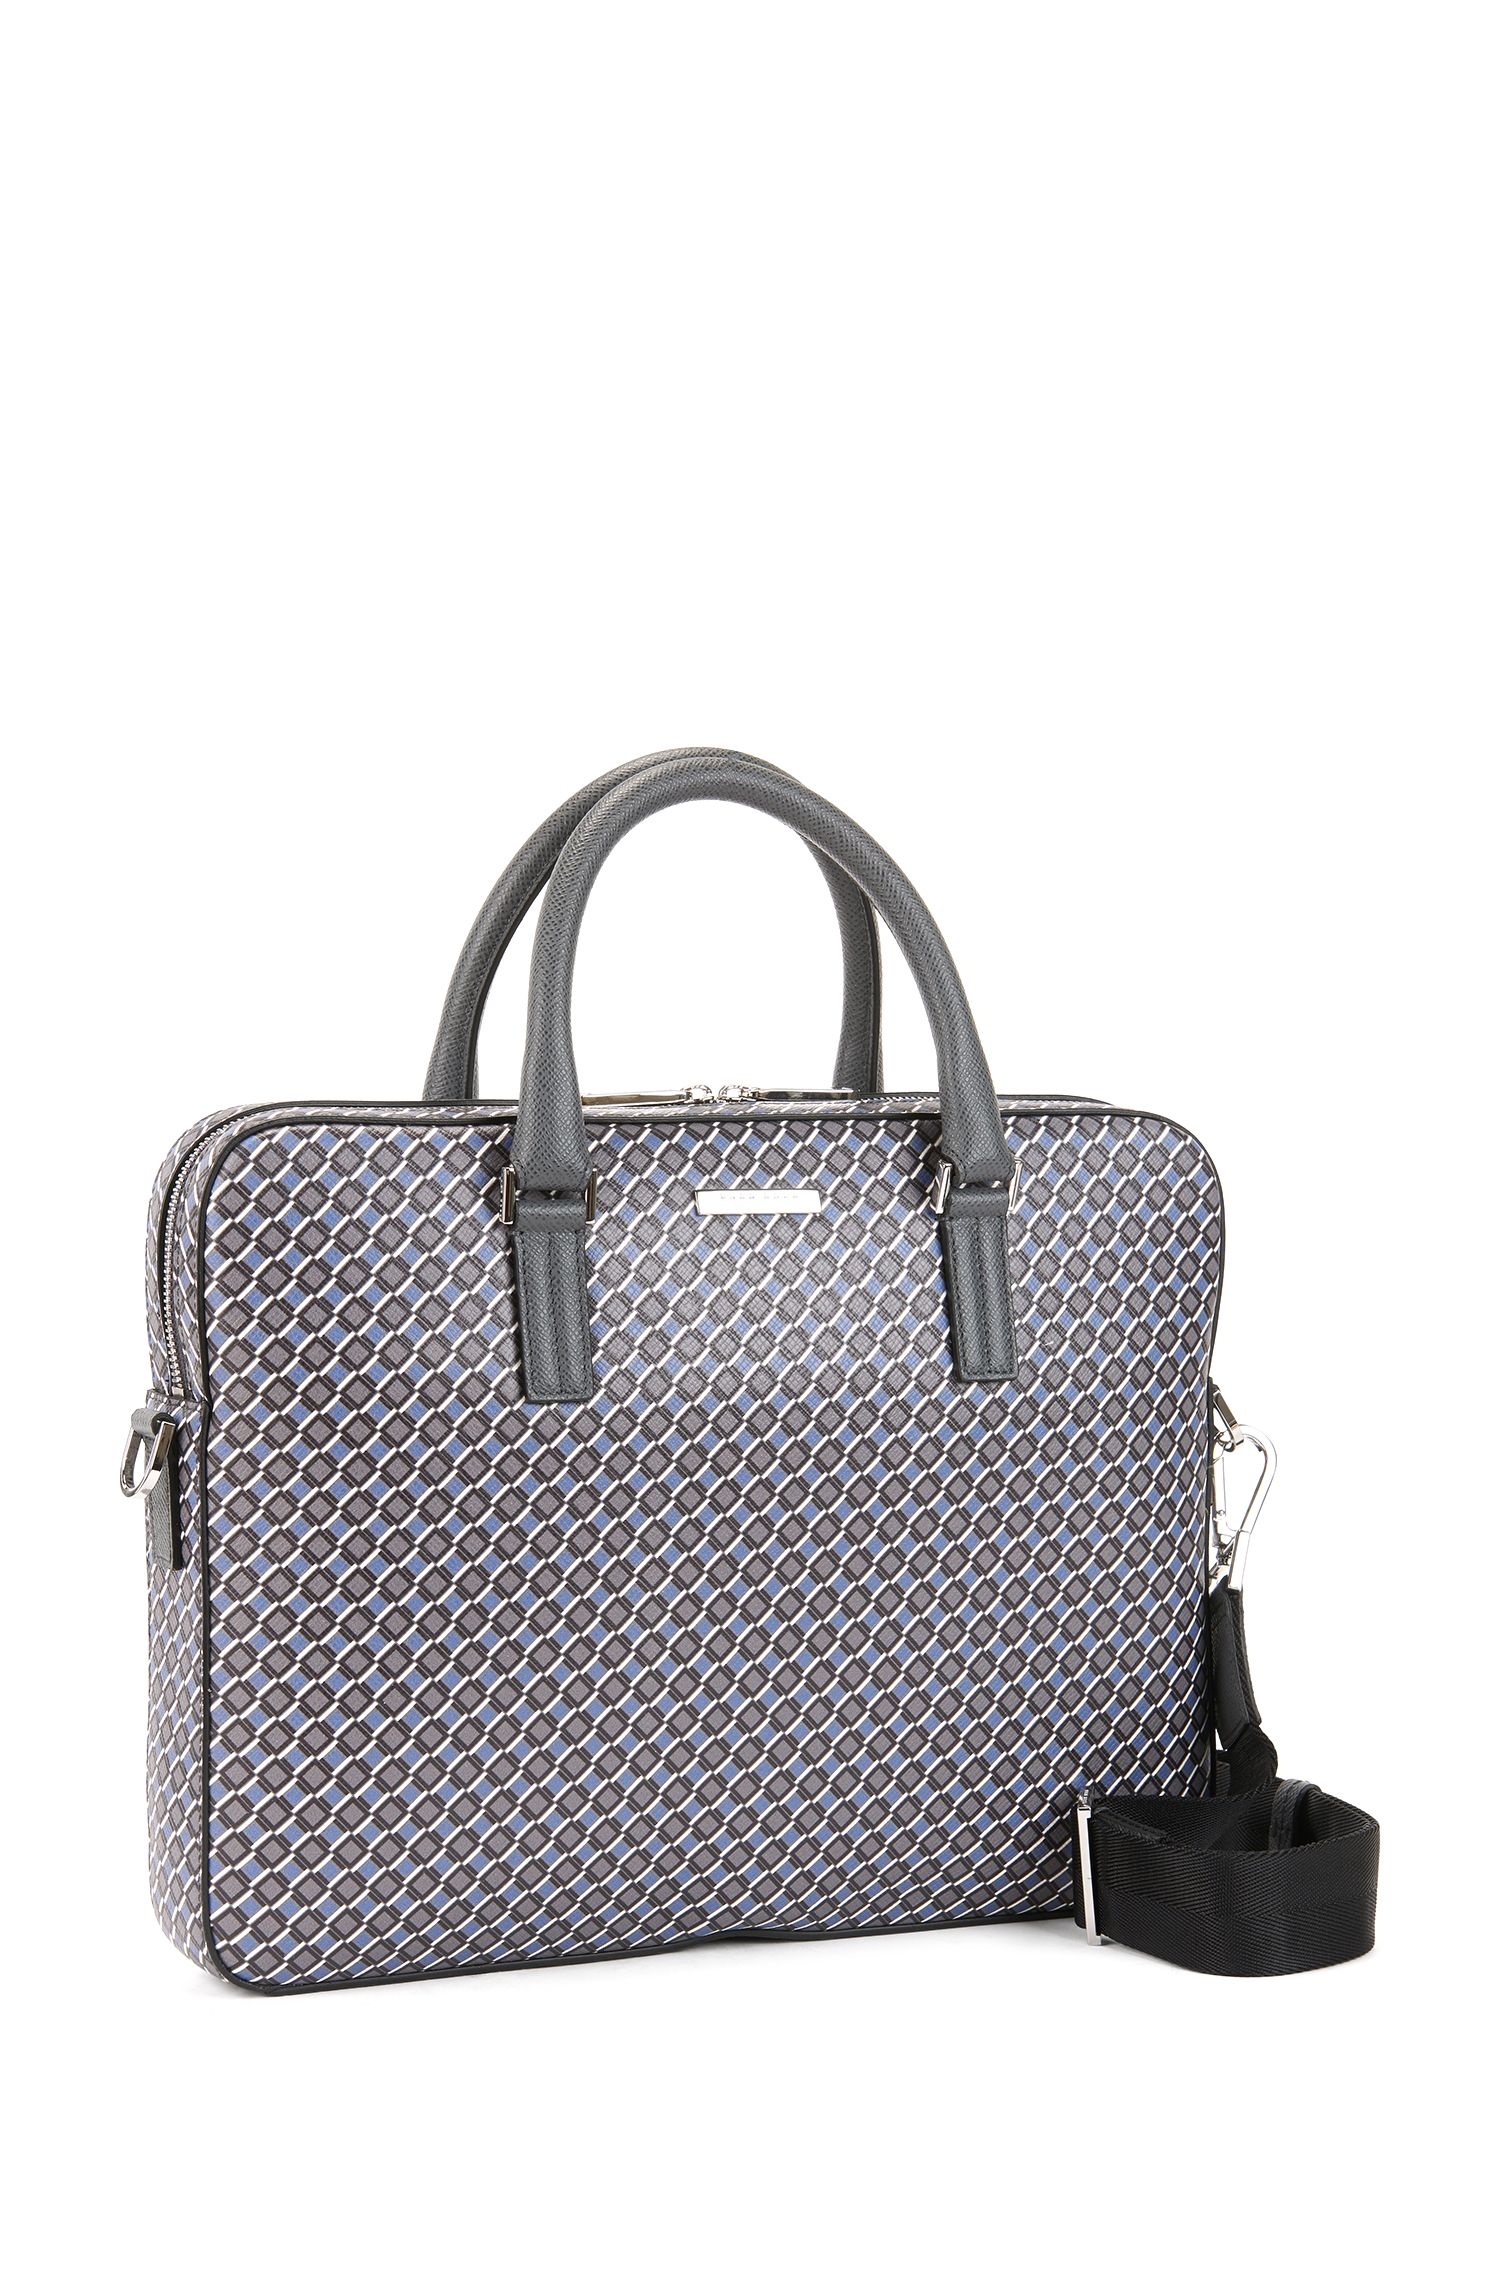 Signature Collection document case in seasonal-printed calfskin leather